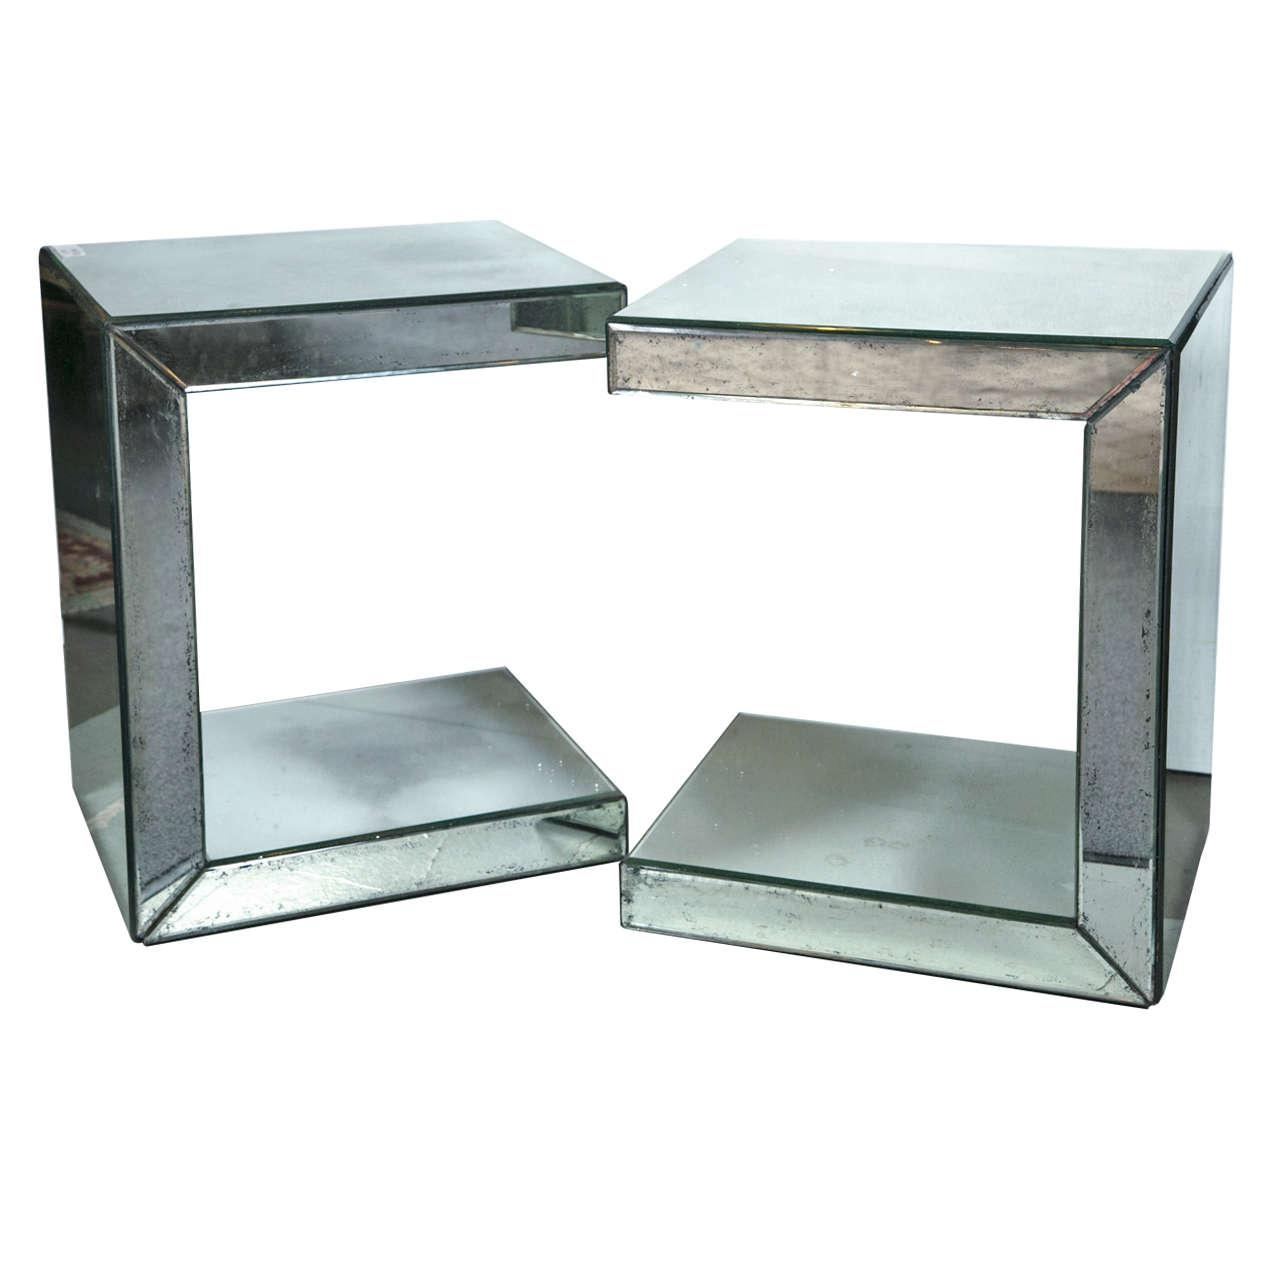 Furniture. Metal C Shaped Sofa Tables (Image 12 of 20)